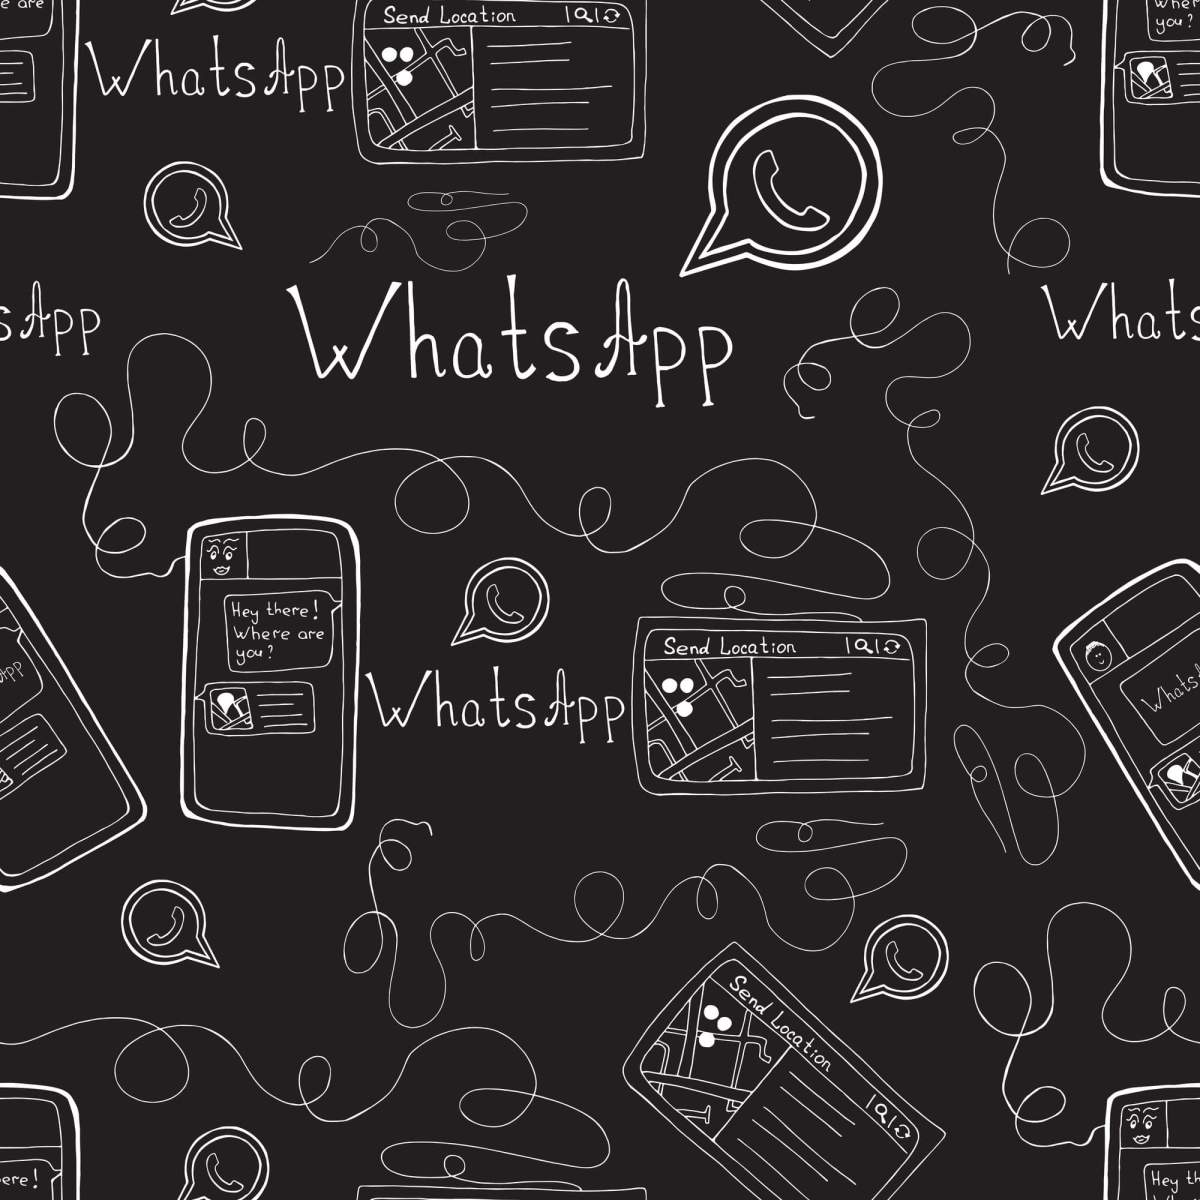 How Does WhatsApp Make Money? WhatsApp Business Model Explained